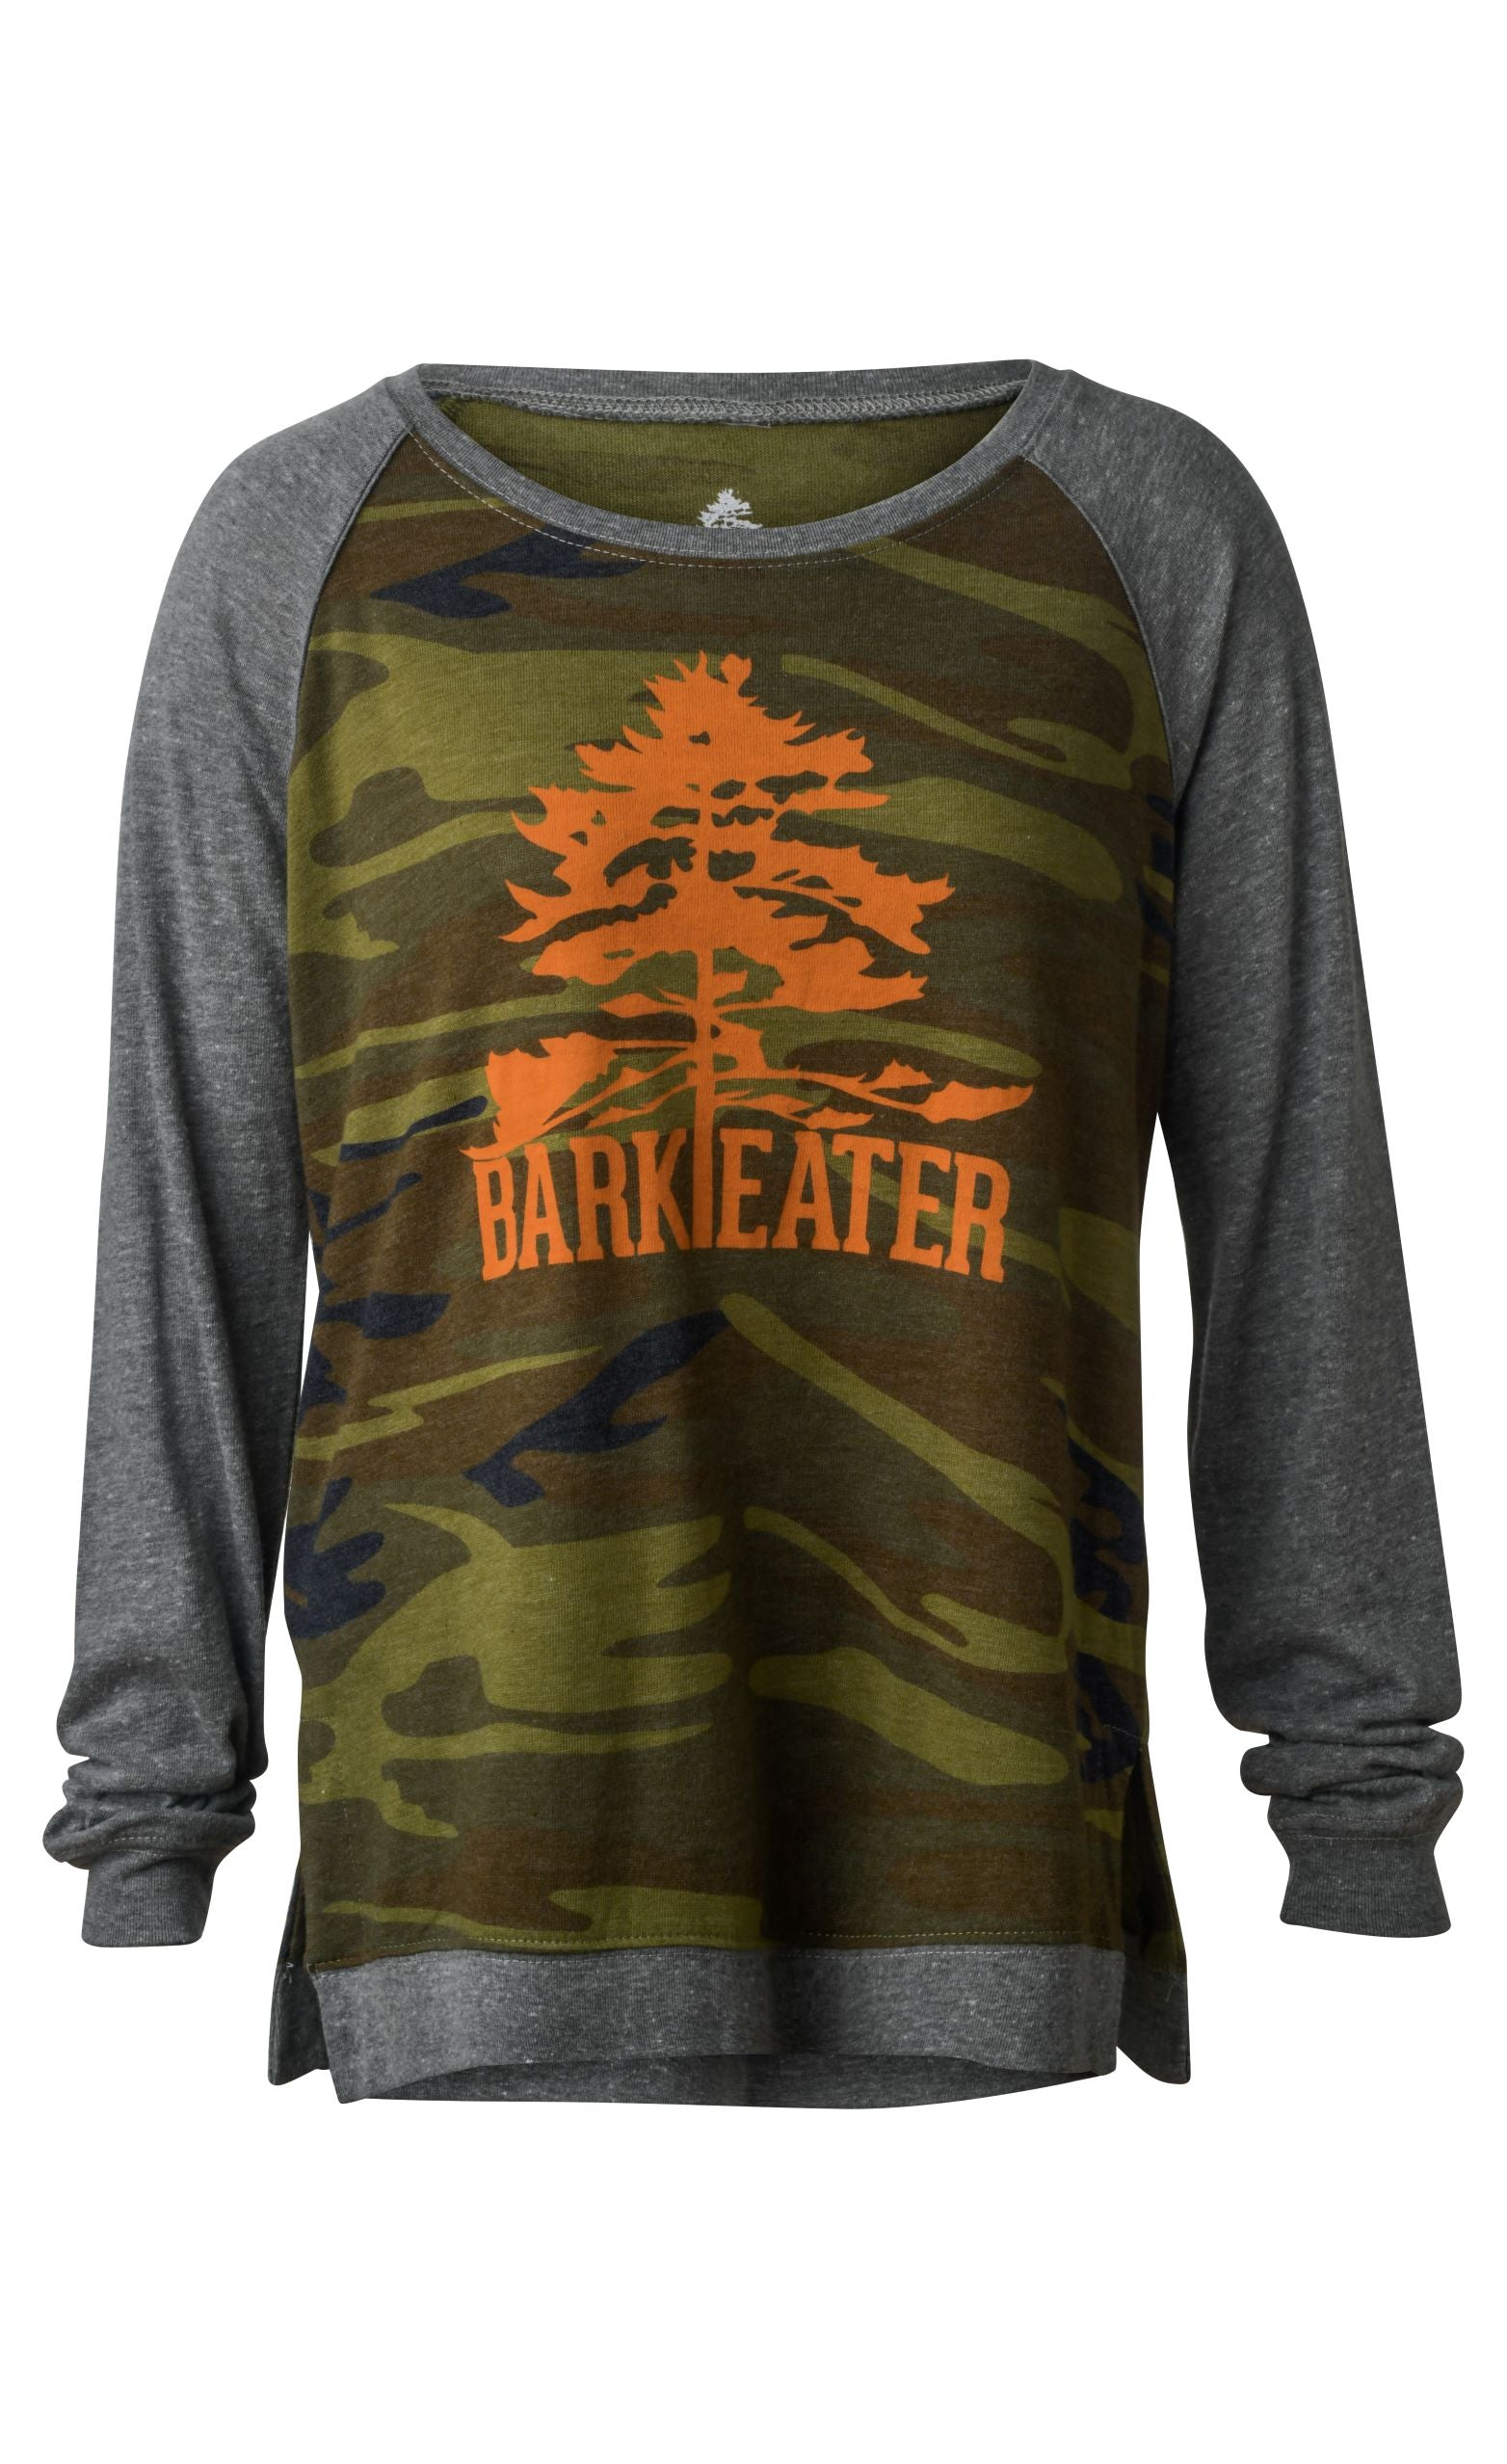 The Bark Eater Ladies Camo